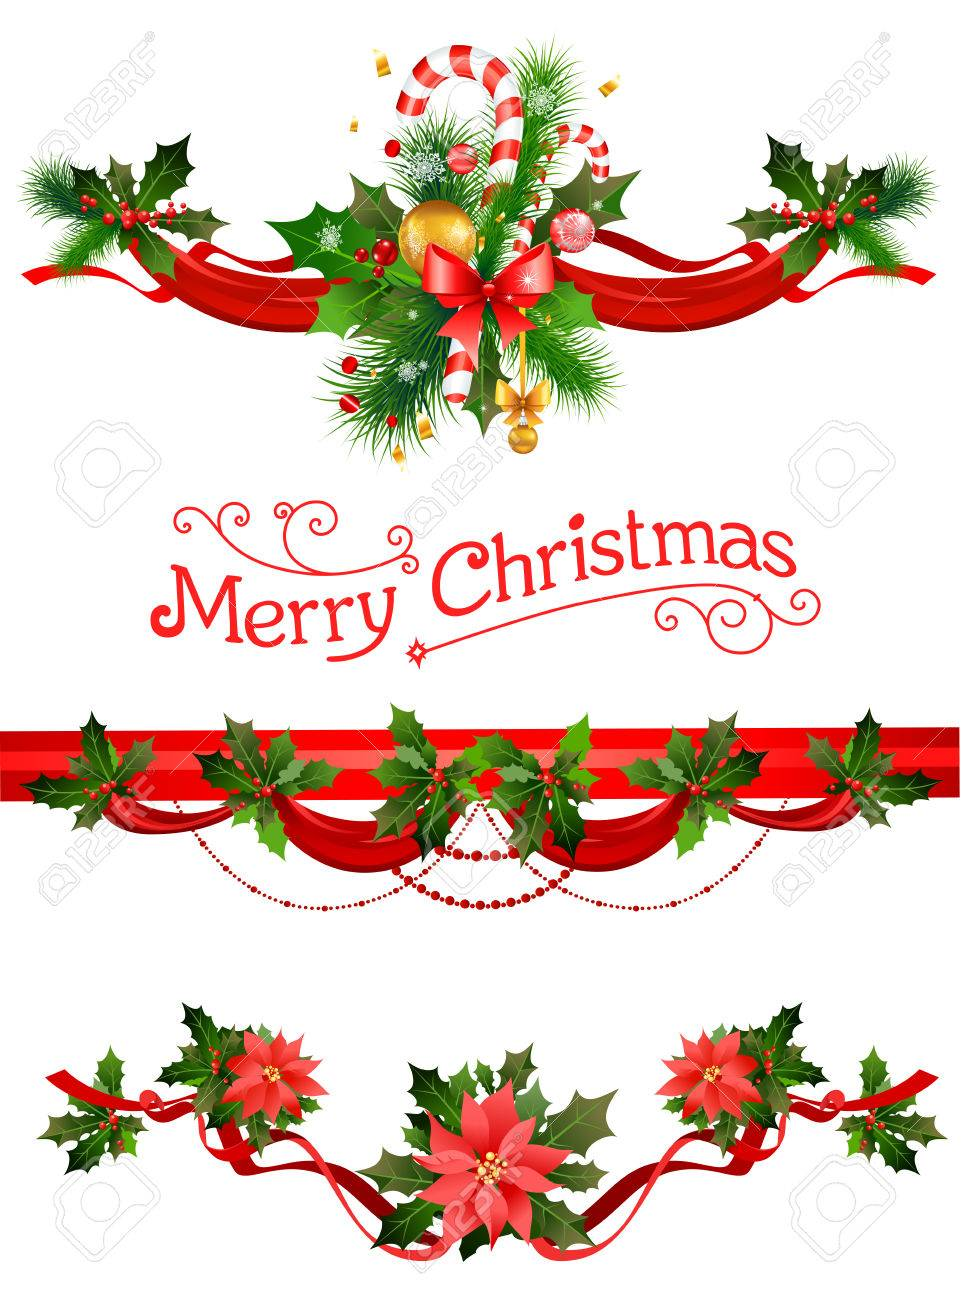 Christmas decorations. Holiday elements for design card, banner,ticket, leaflet and so on. - 49779586